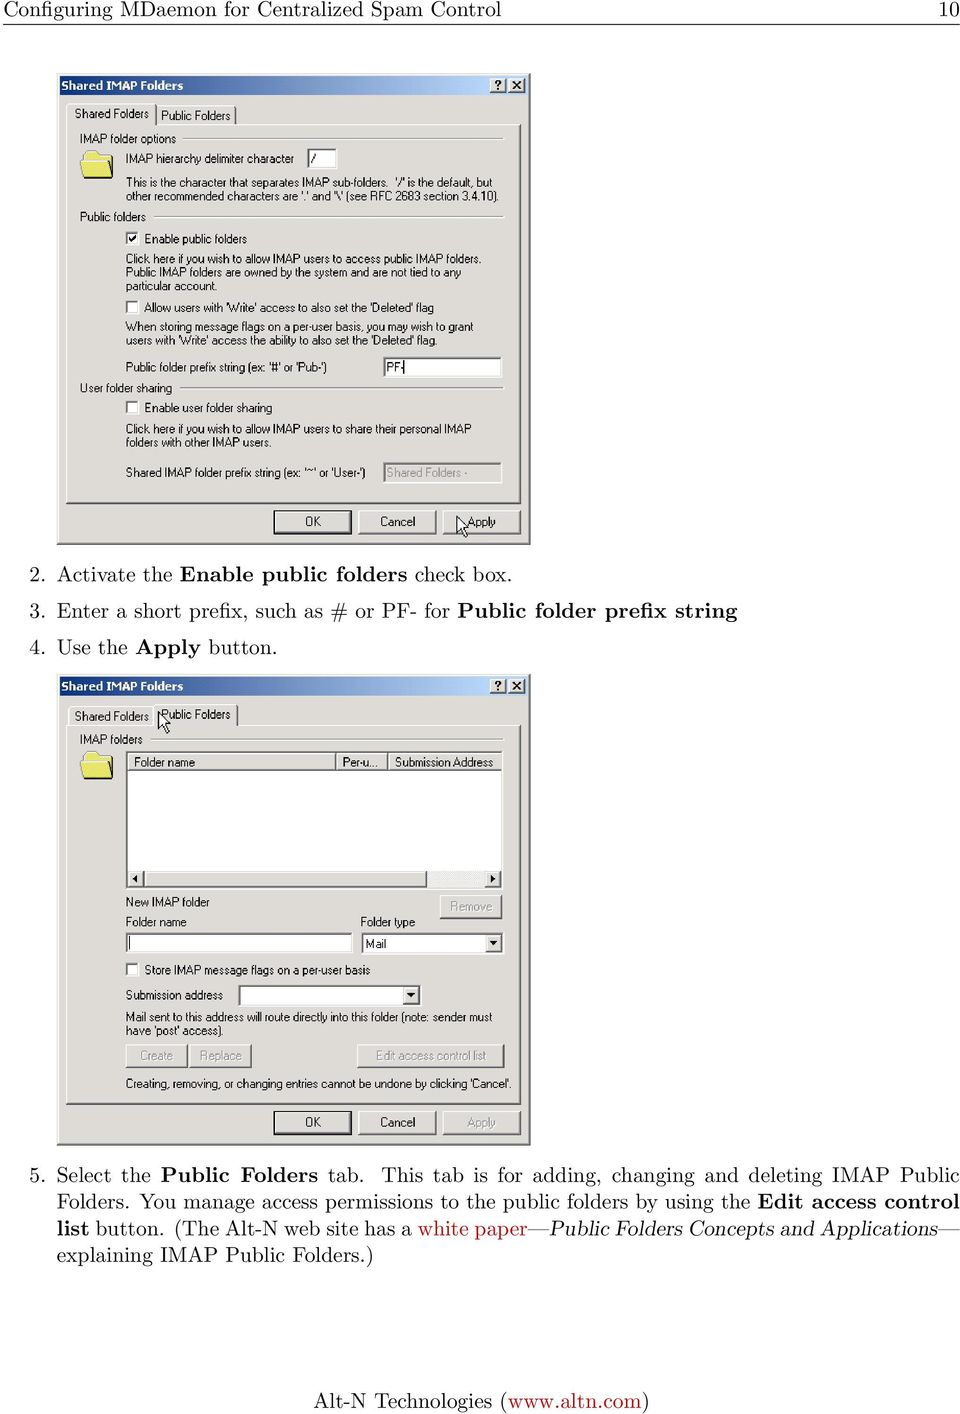 Select the Public Folders tab. This tab is for adding, changing and deleting IMAP Public Folders.